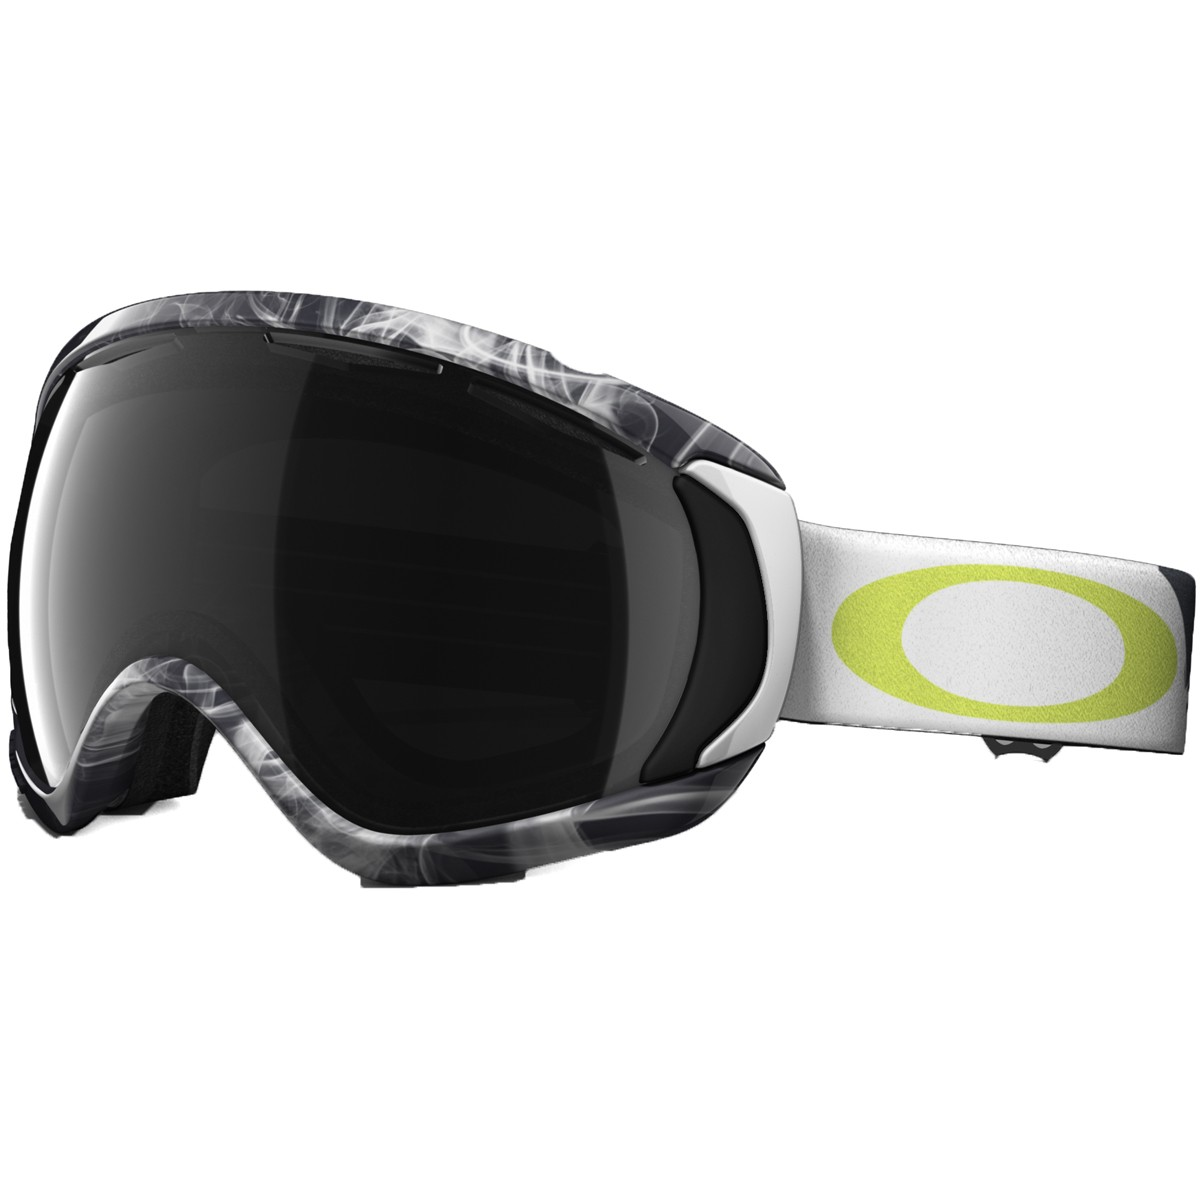 Best Oakley Goggles For Snowboarding